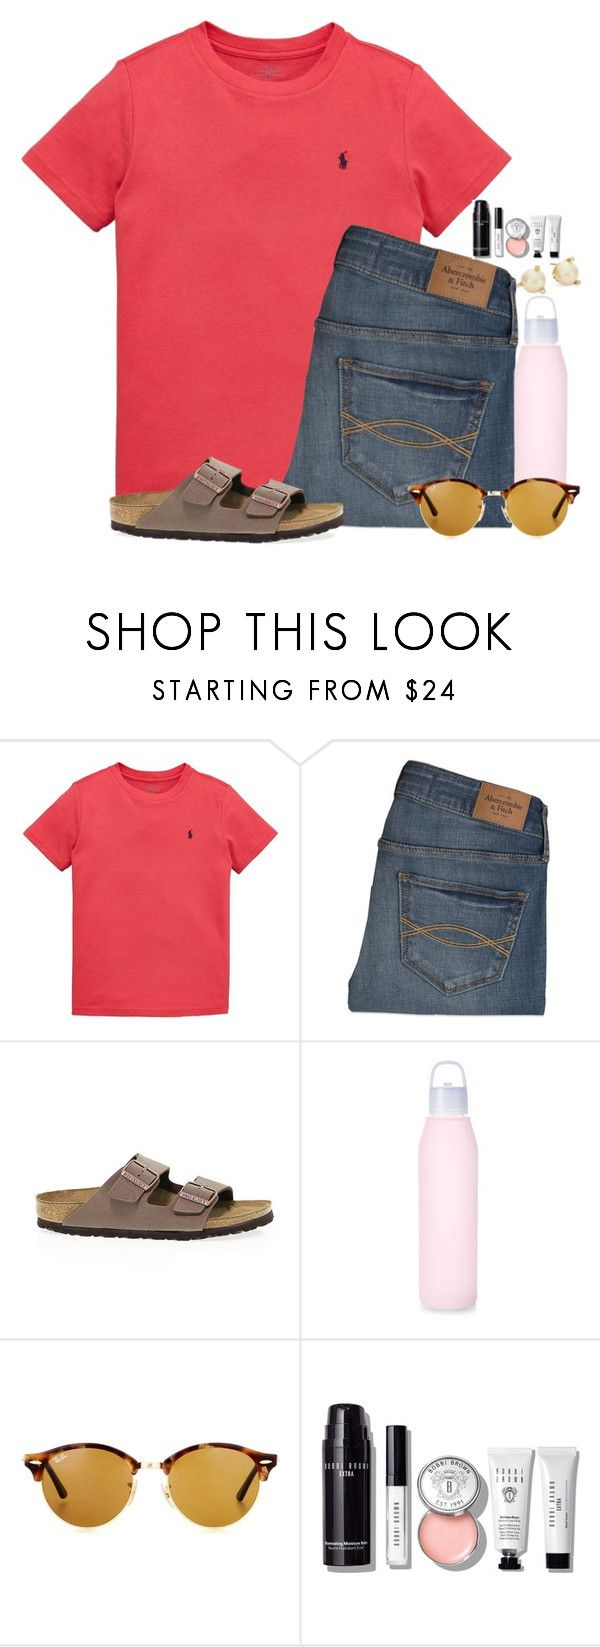 """Exact OOTD"" by flroasburn ❤ liked on Polyvore featuring Ralph Lauren, Abercrombie & Fitch, Birkenstock, Ray-Ban, Bobbi Brown Cosmetics and Kate Spade"